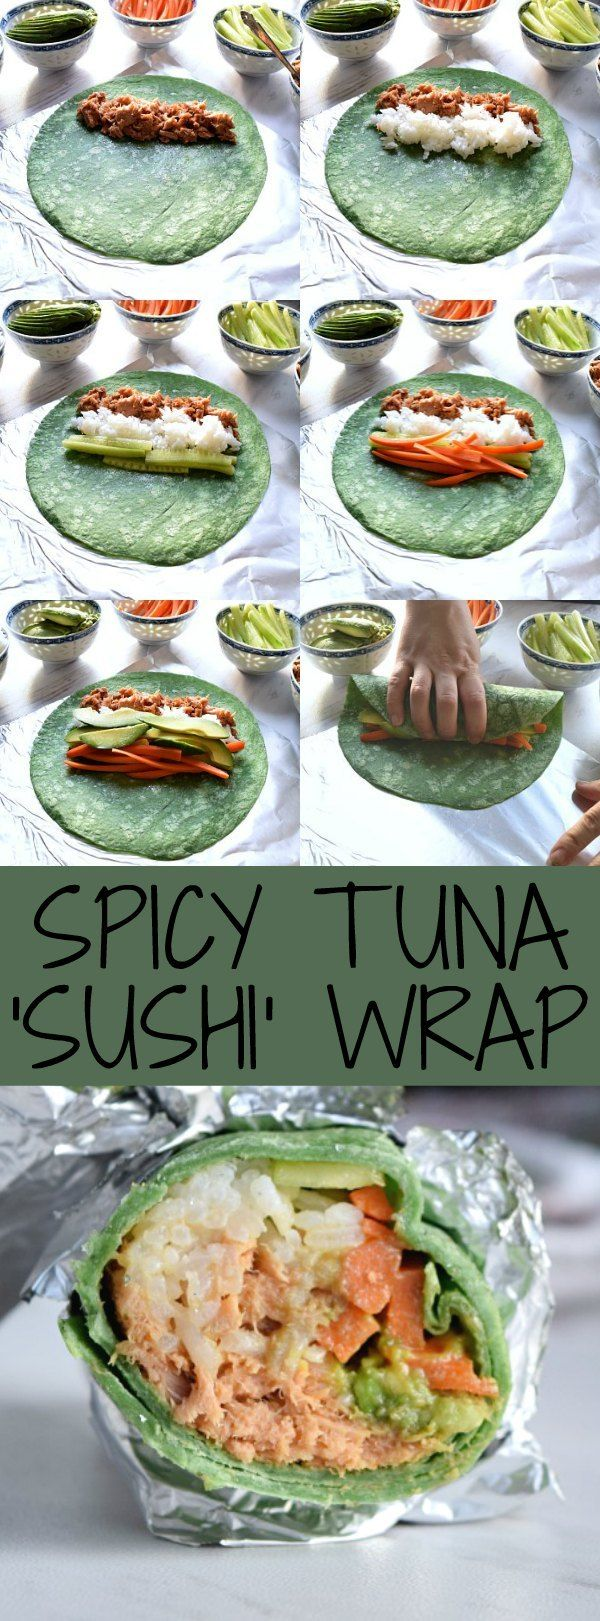 Spicy Tuna 'Sushi' Wrap